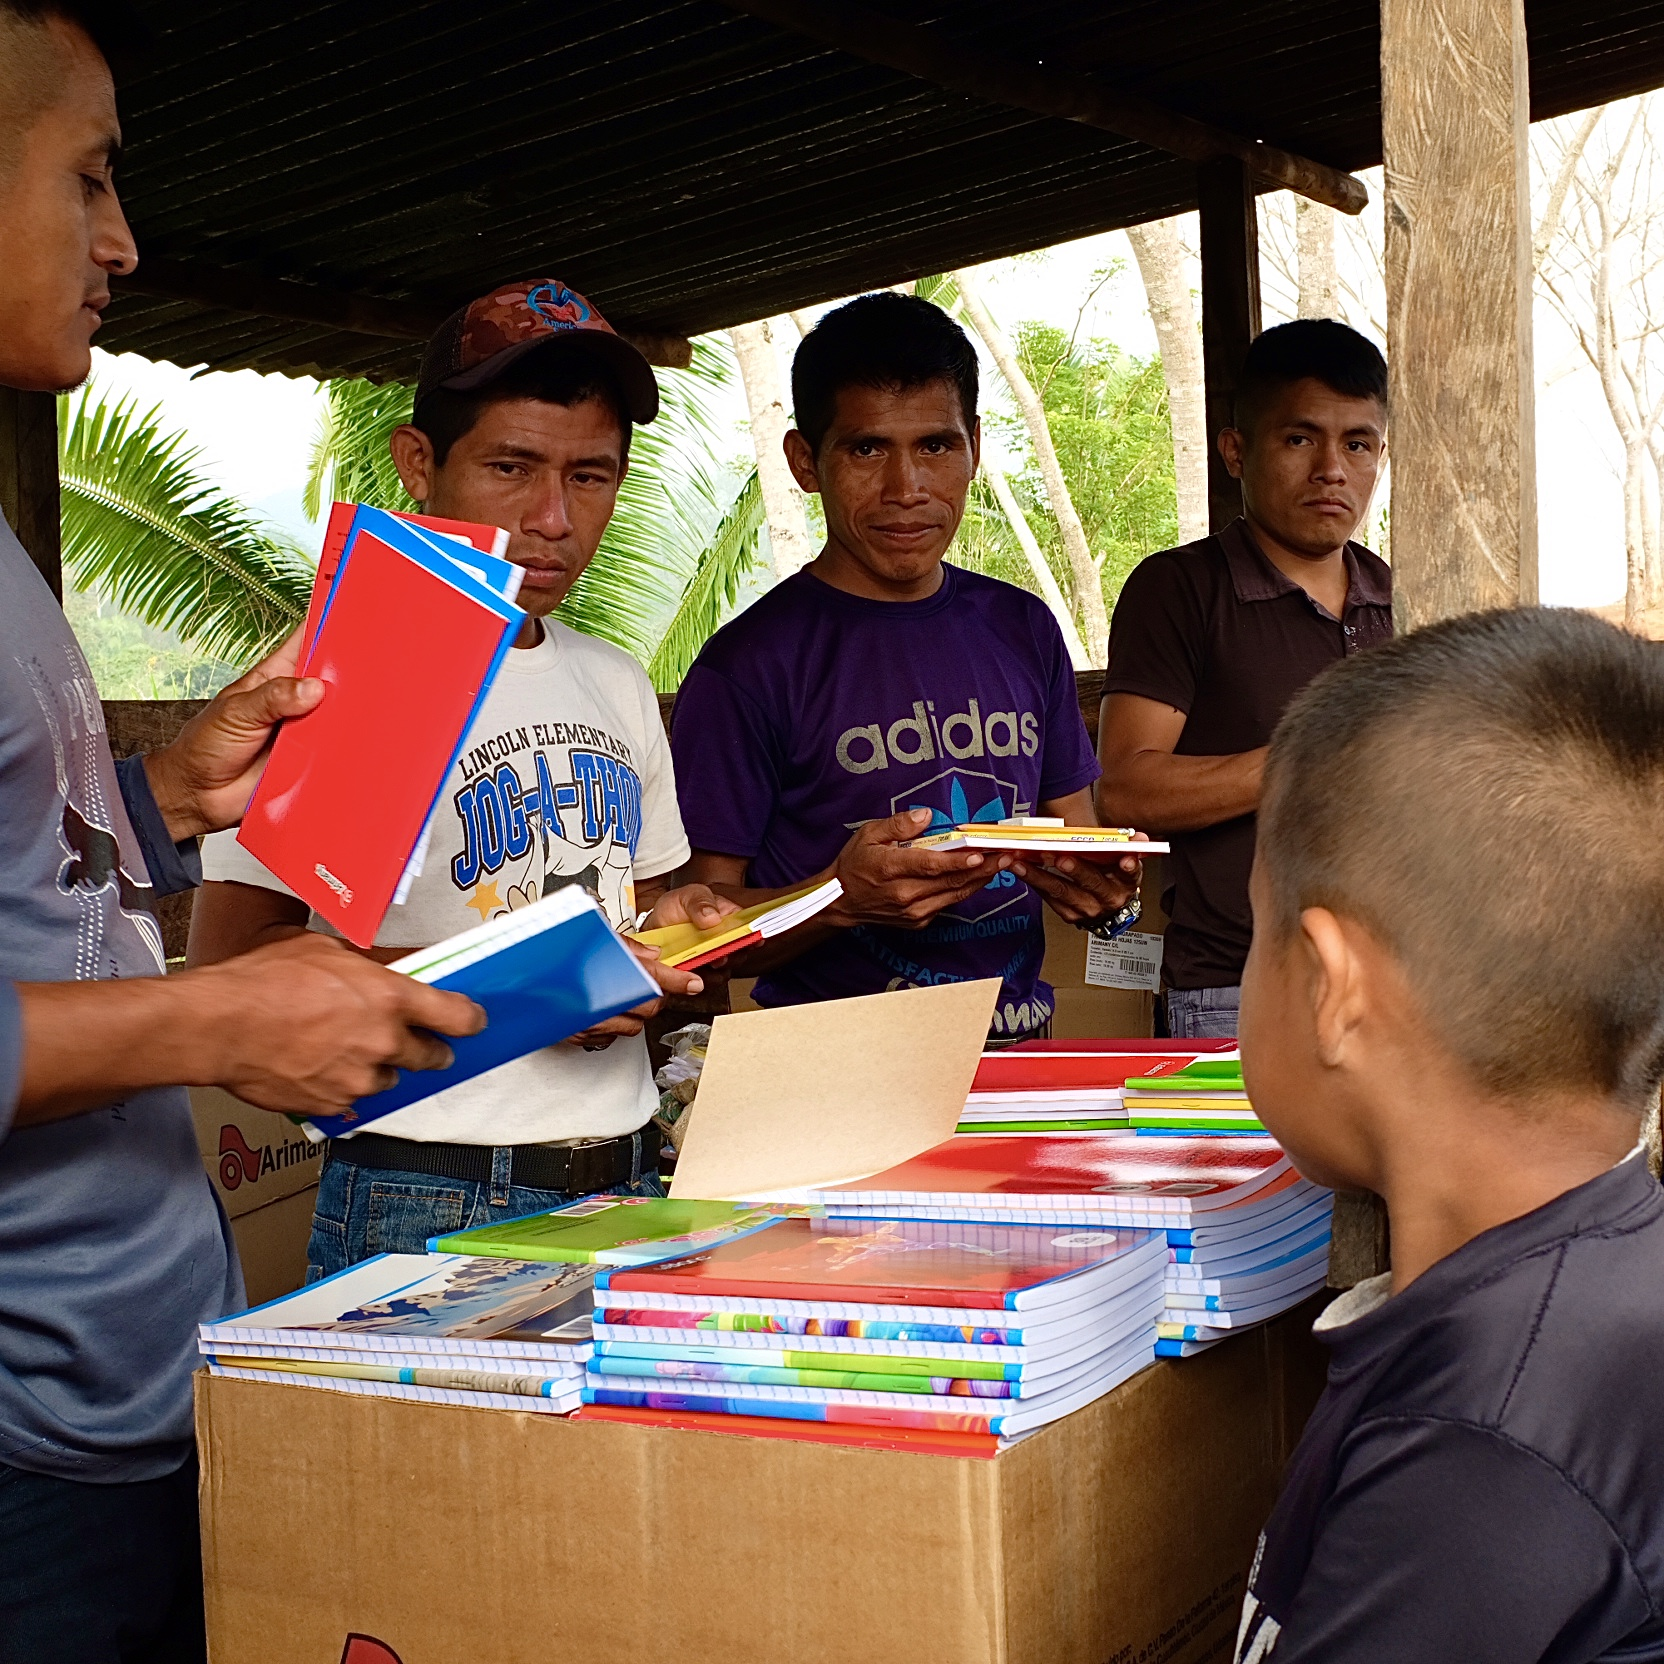 Passing out School materials in Guatemala